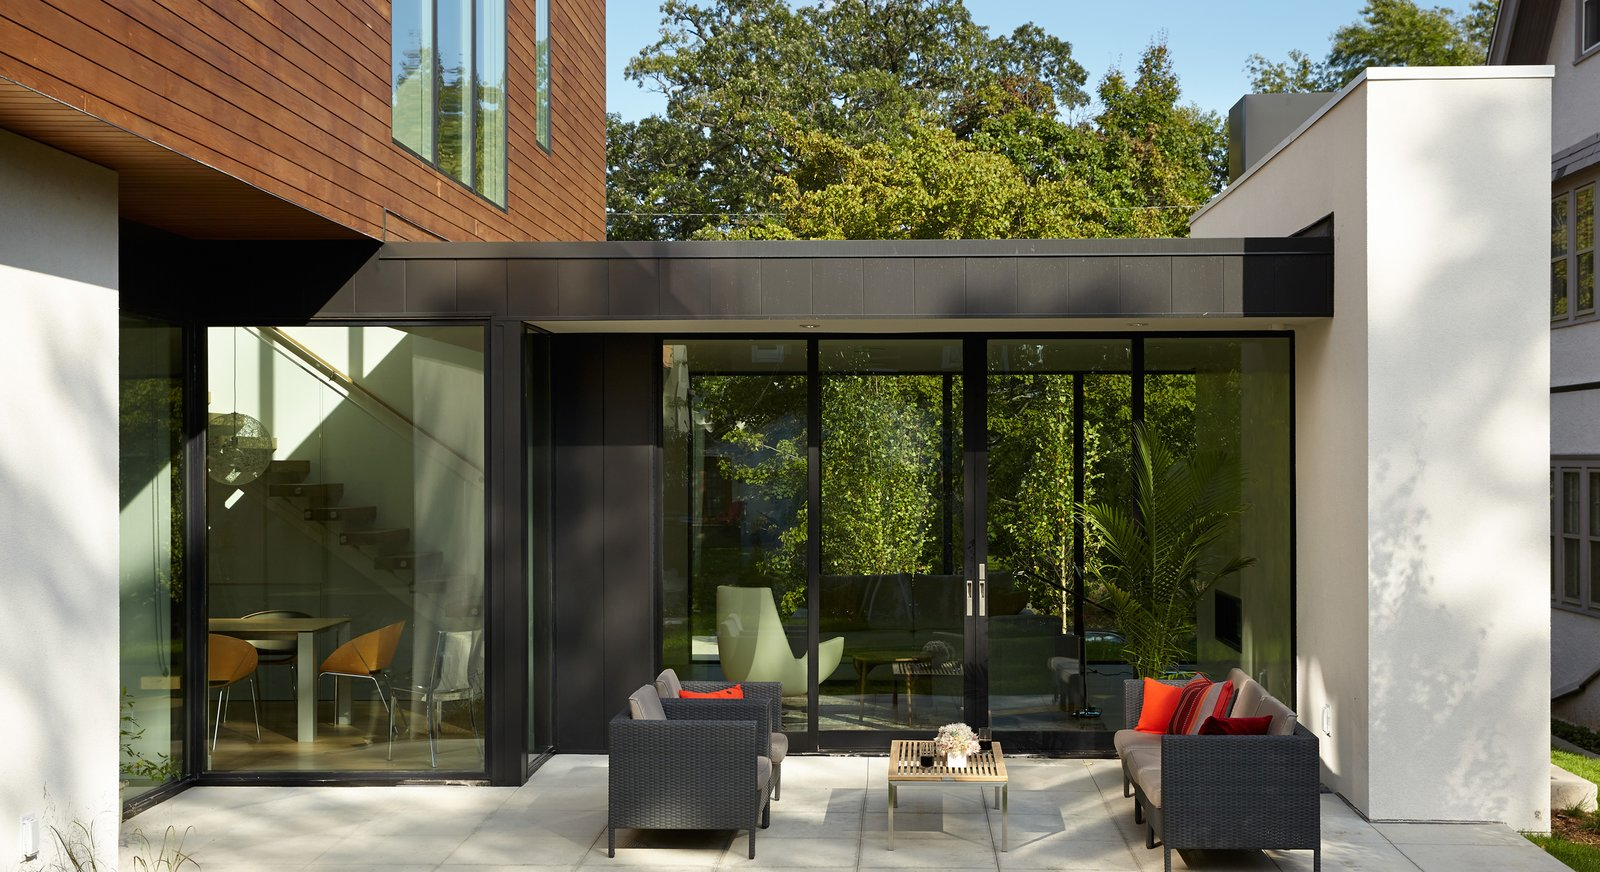 Outdoor, Pavers Patio, Porch, Deck, Wood Patio, Porch, Deck, Metal Patio, Porch, Deck, Concrete Patio, Porch, Deck, Back Yard, Garden, and Trees  Sheridan Residence by Peterssen/Keller Architecture